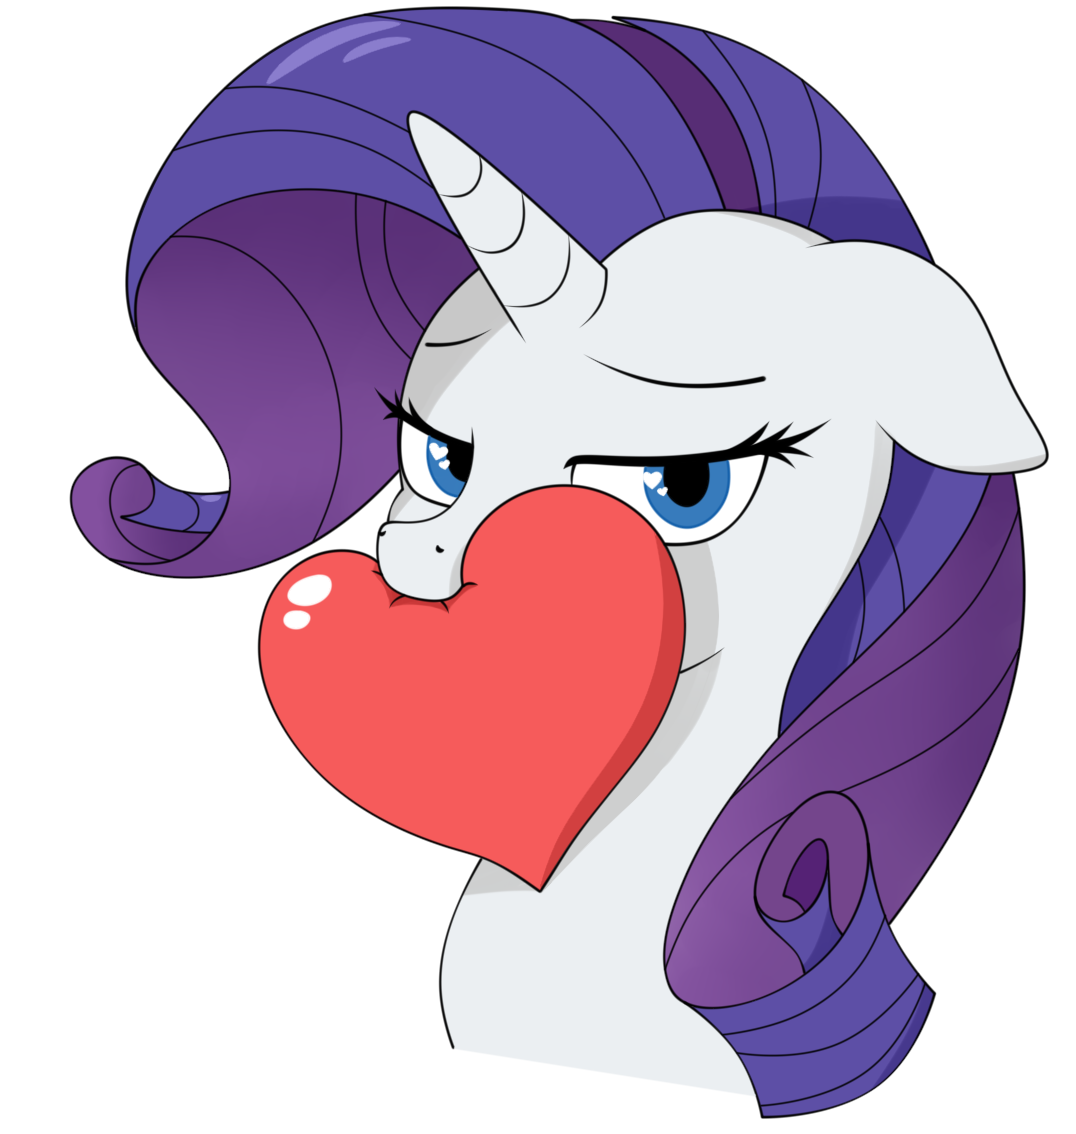 in_love_by_kirr12-dcj6o3i.png